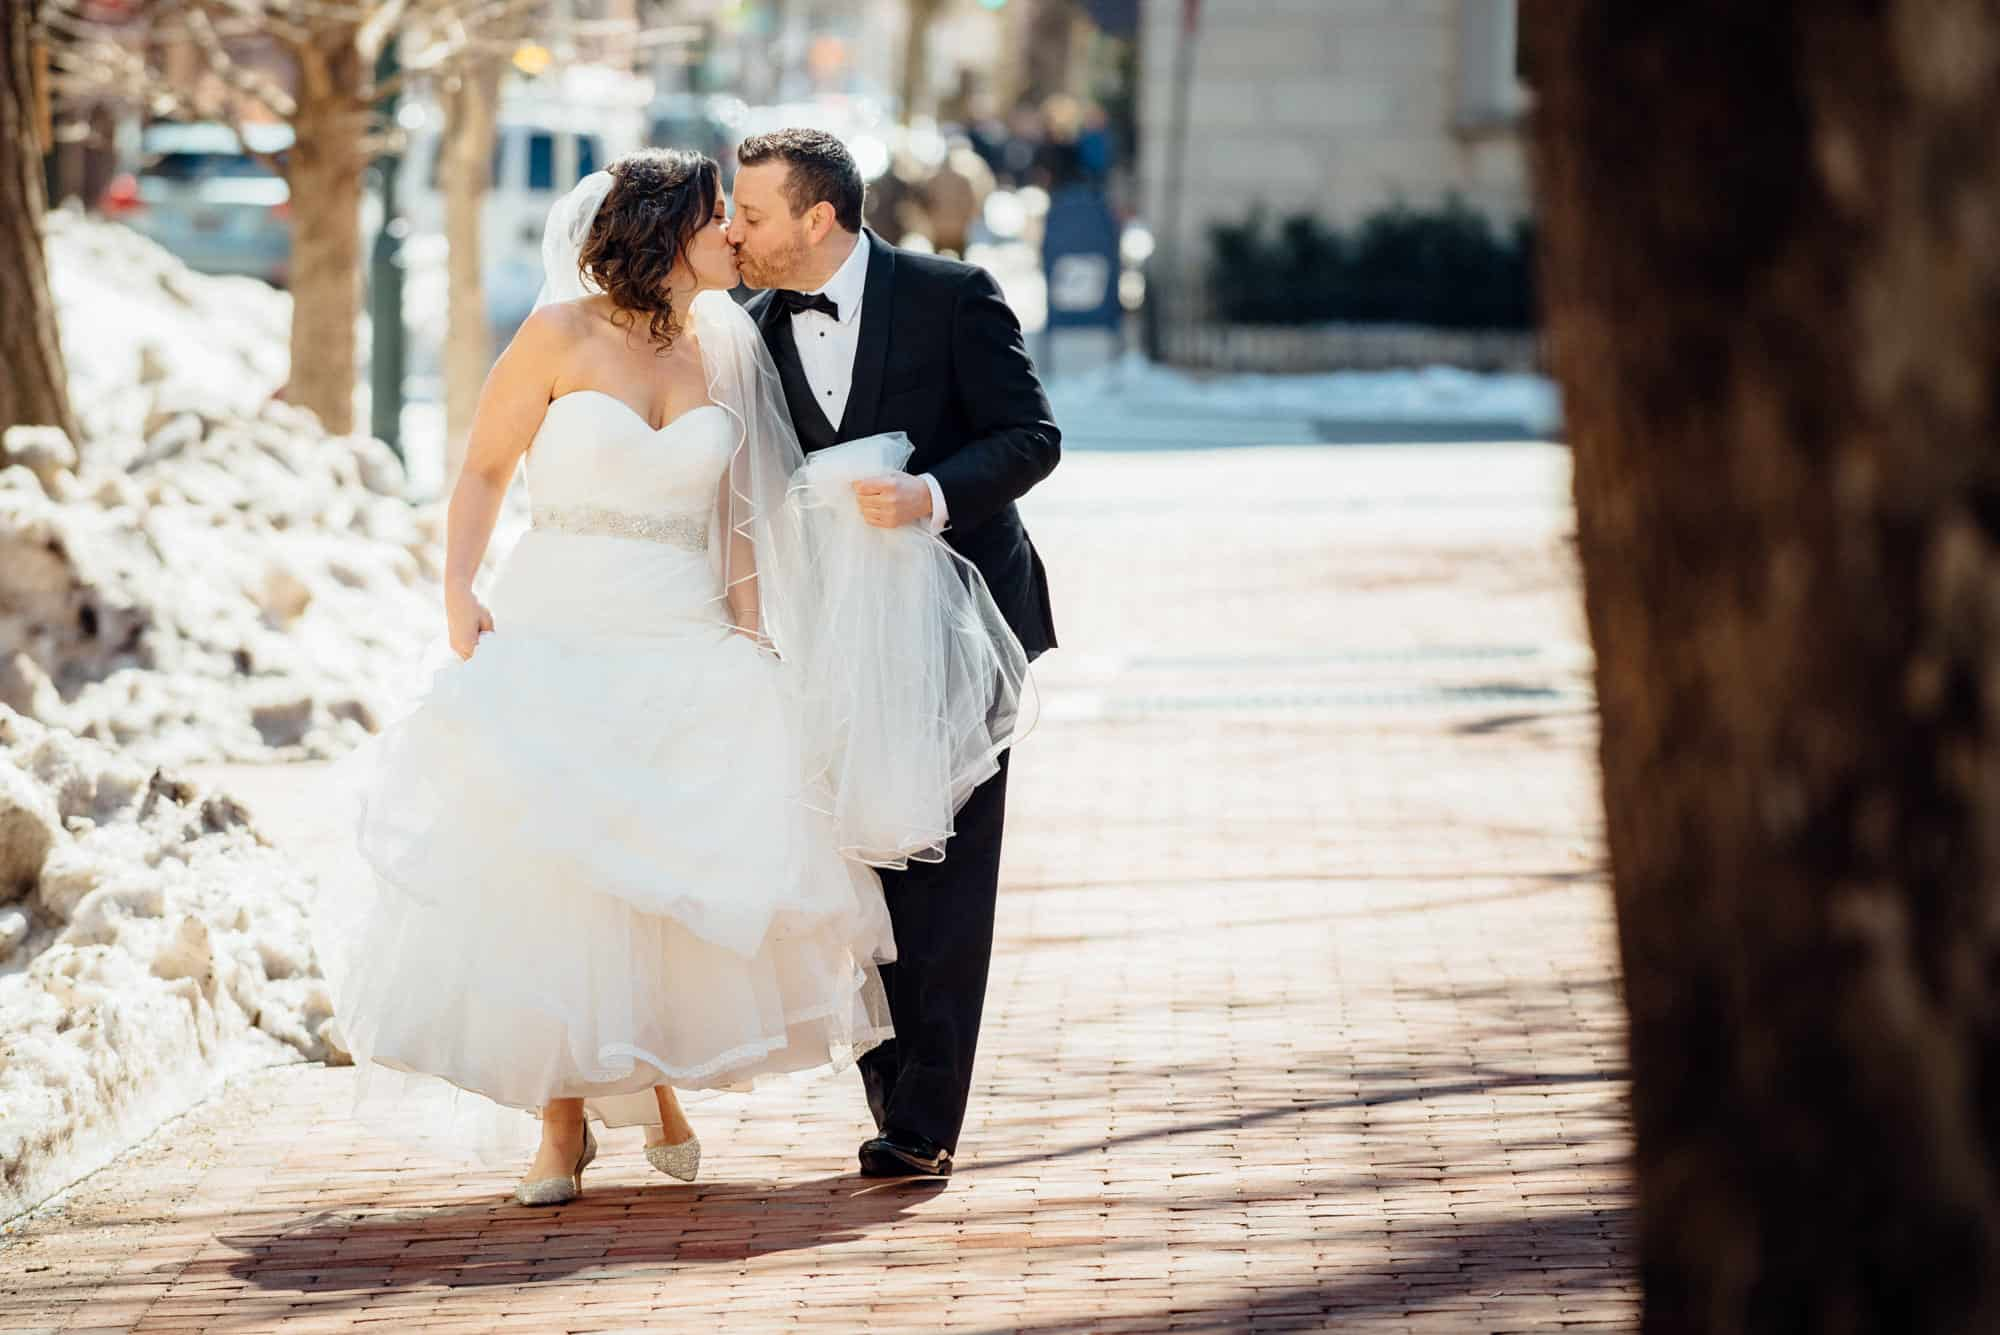 Bride and groom kissing on city street